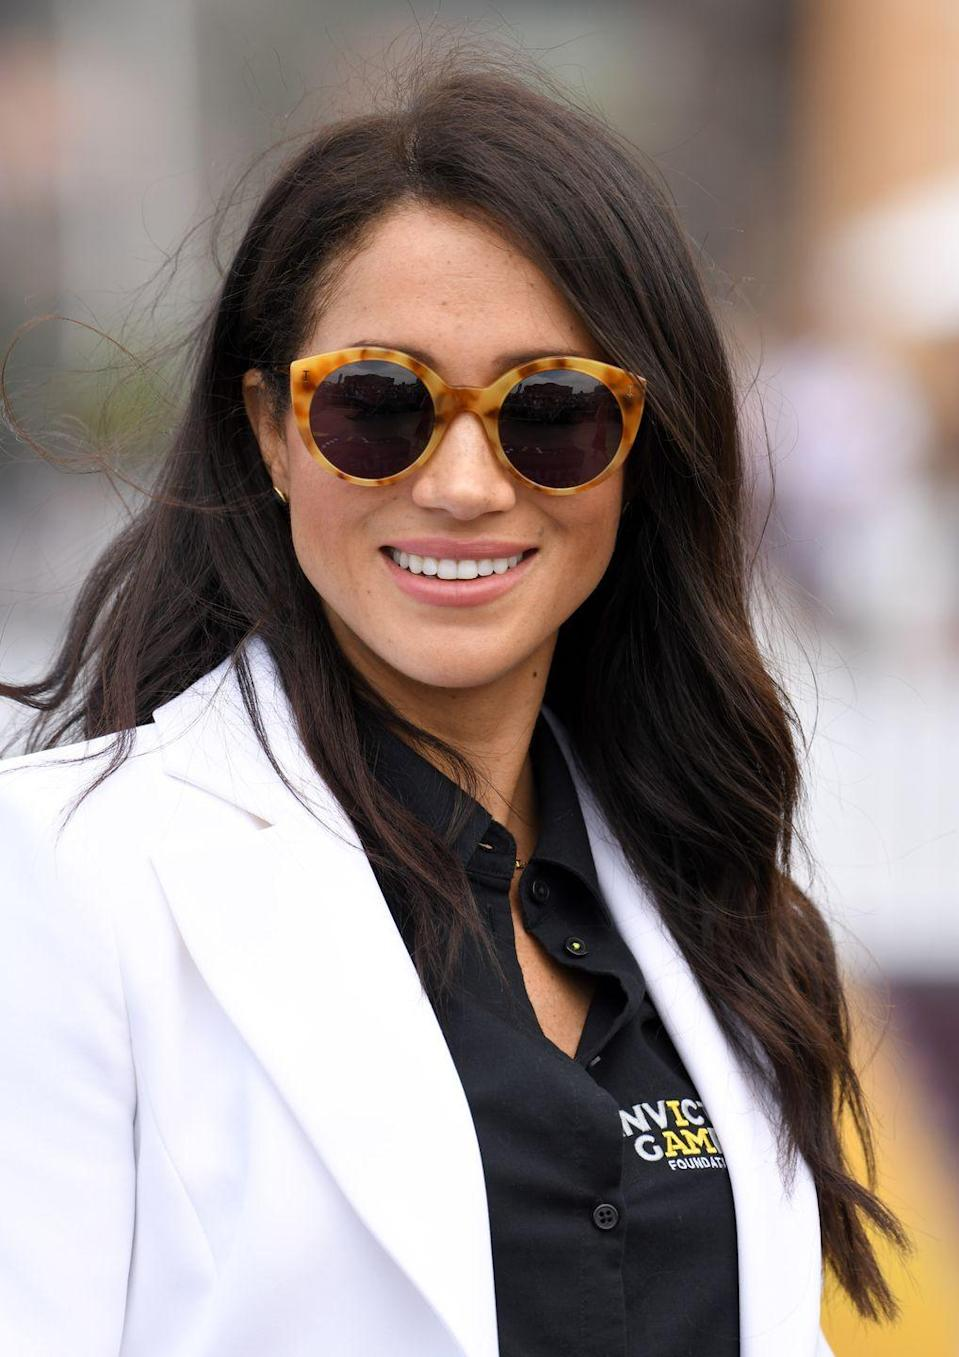 <p>Meg attended the Invictus Games in October 2018 where she rocked these fun frames from Illesteva. Unfortunately, the <em>exact </em>color combo that she had on at this event isn't available for purchase at the moment, but keep scrolling for options!</p>